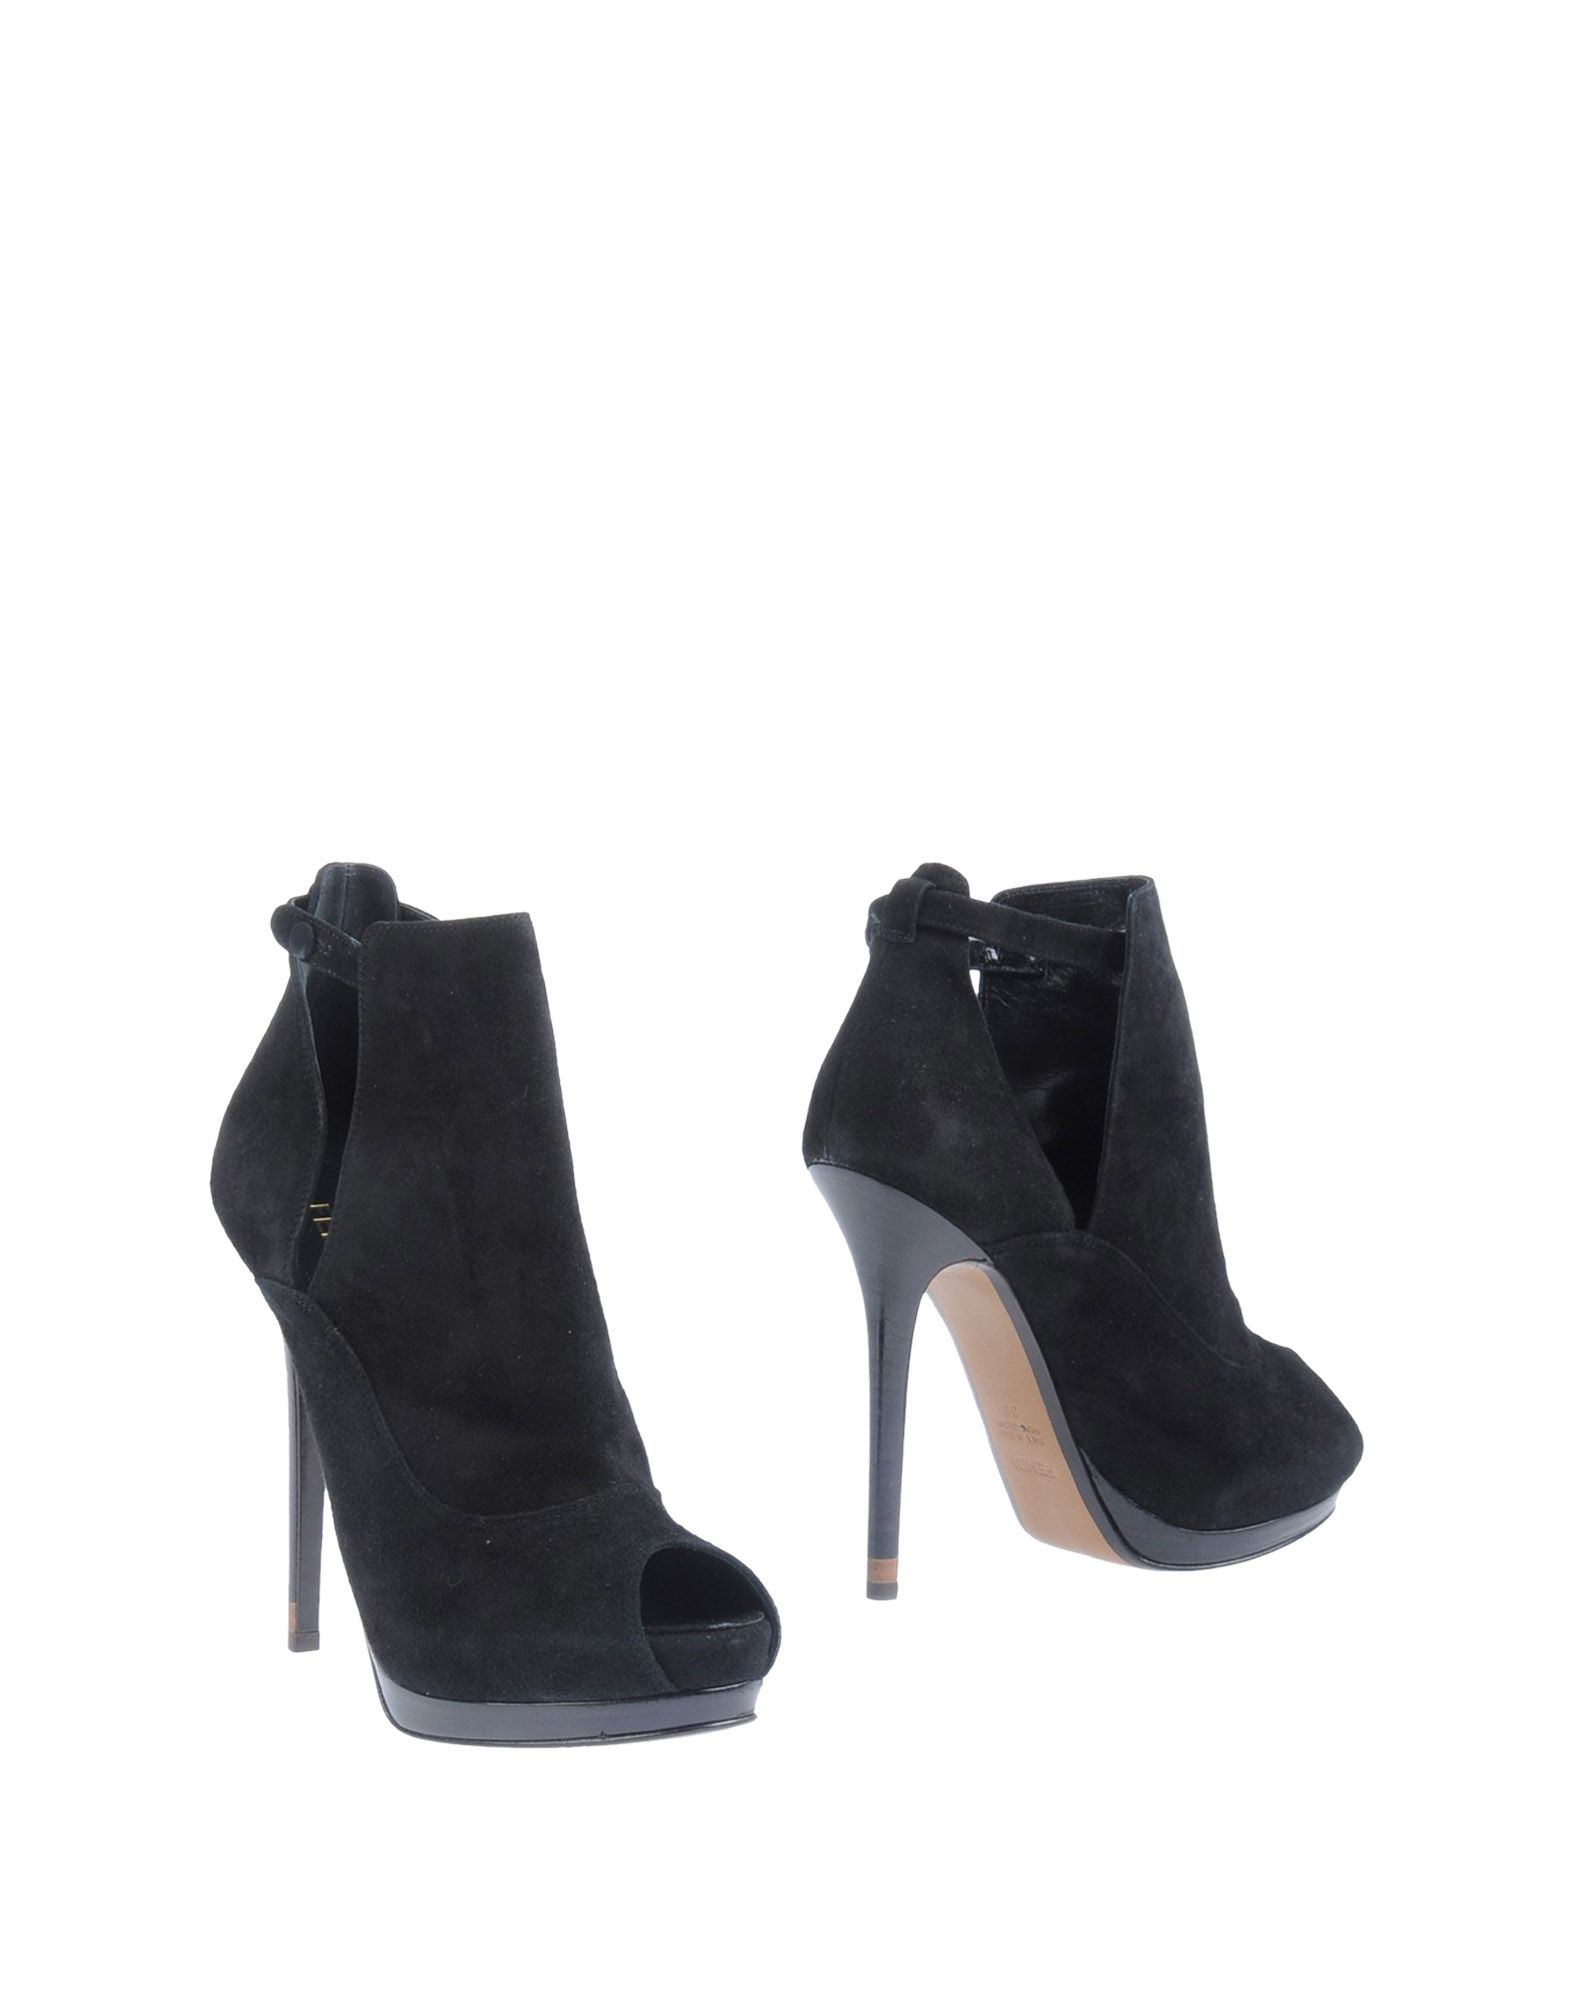 Ankle boots - Item 44559520